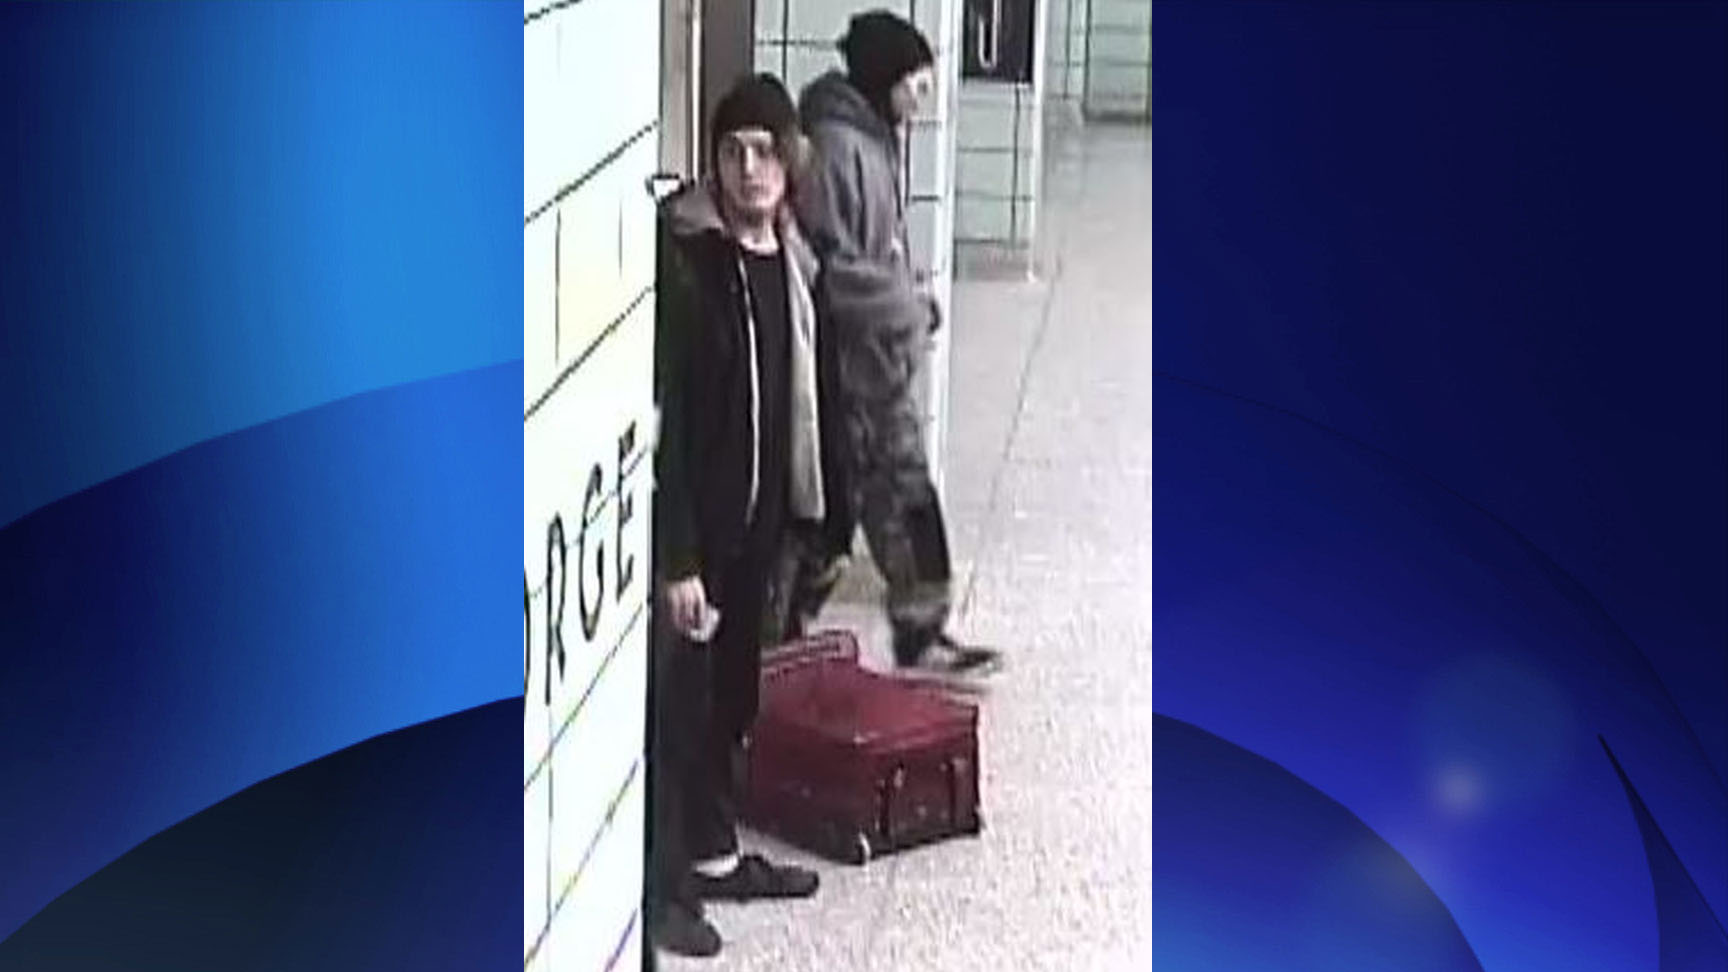 Police release photos of suspects wanted in stink bomb blast on TTC